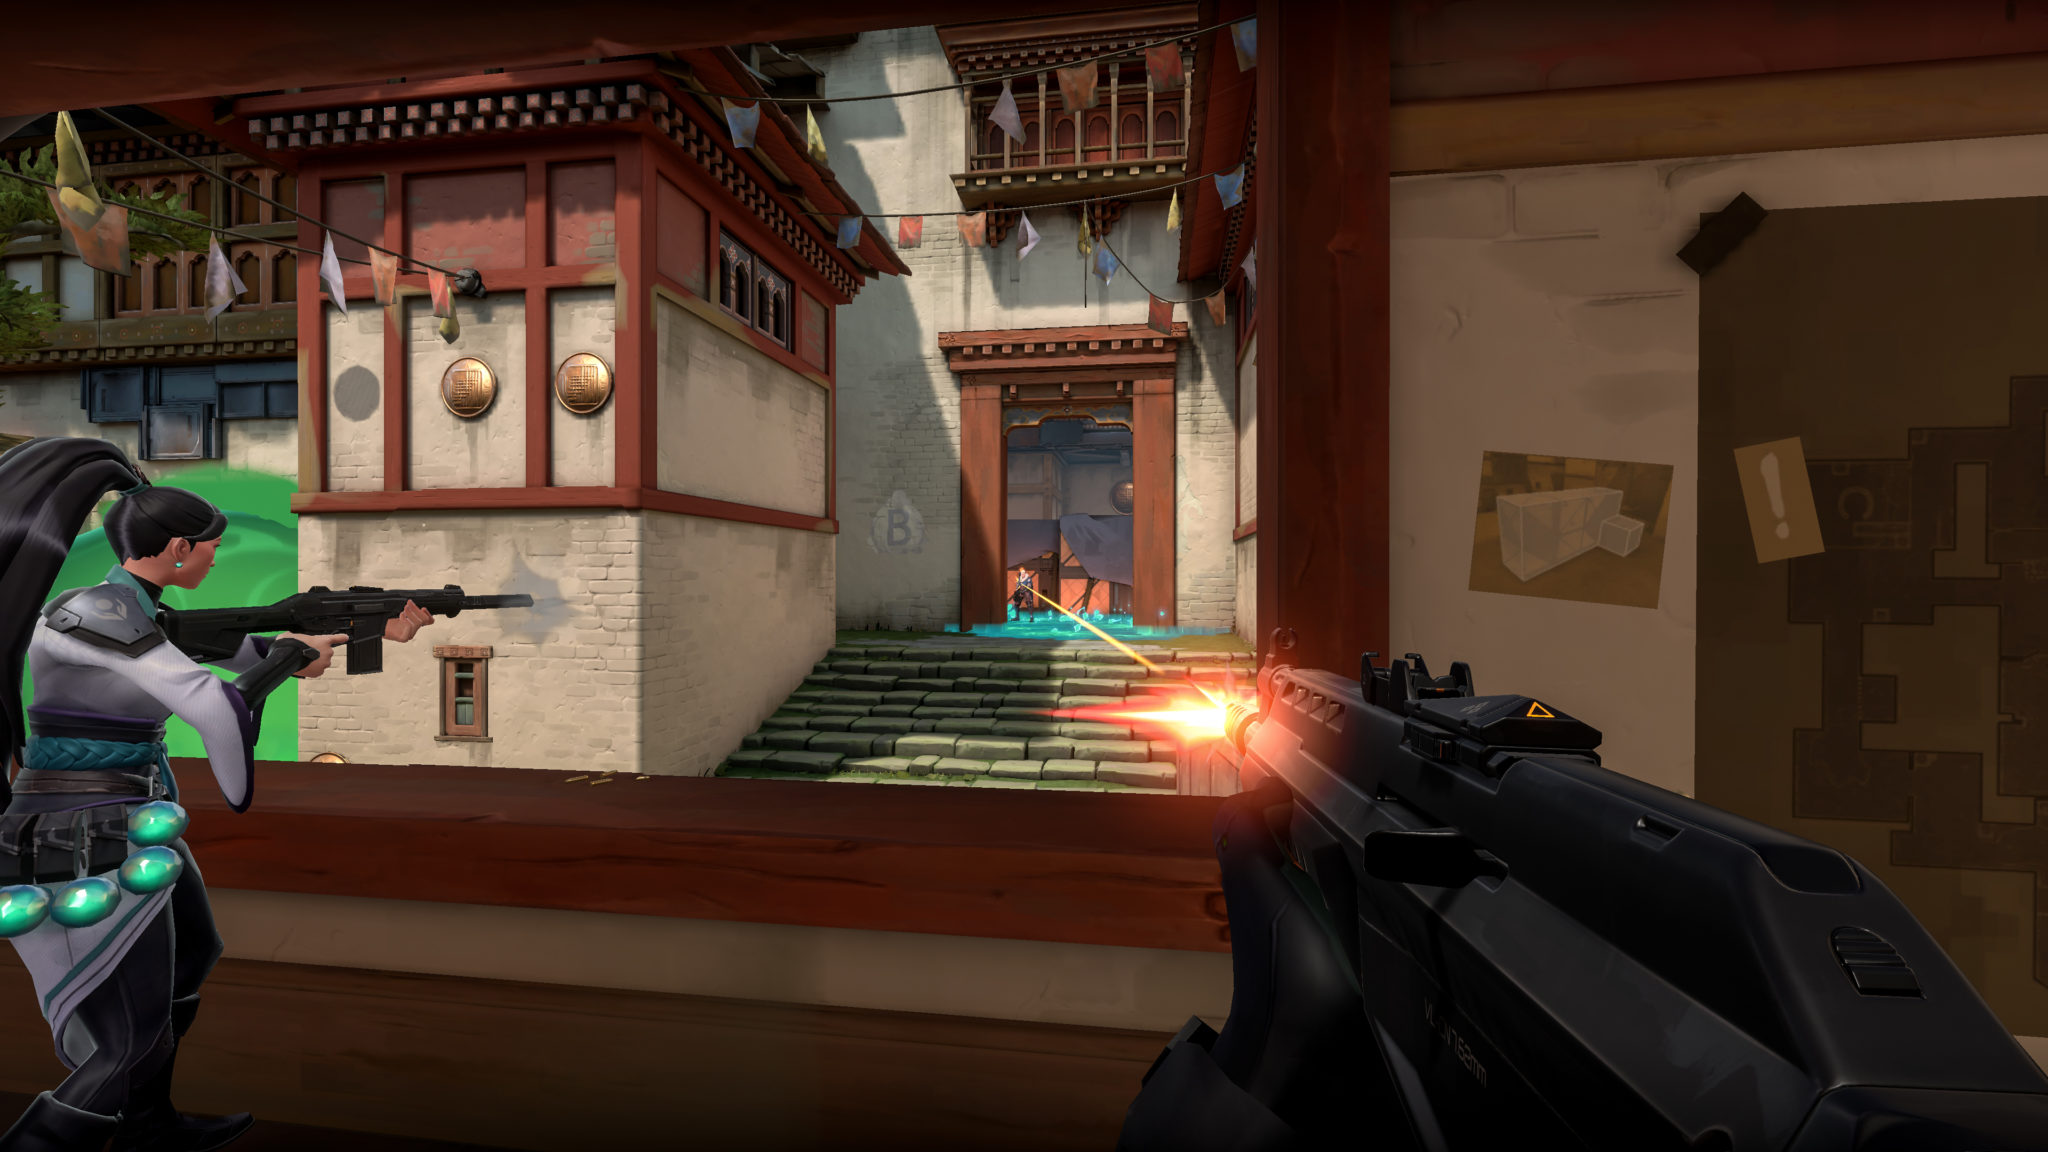 Player shooting weapon on Haven in Valorant.